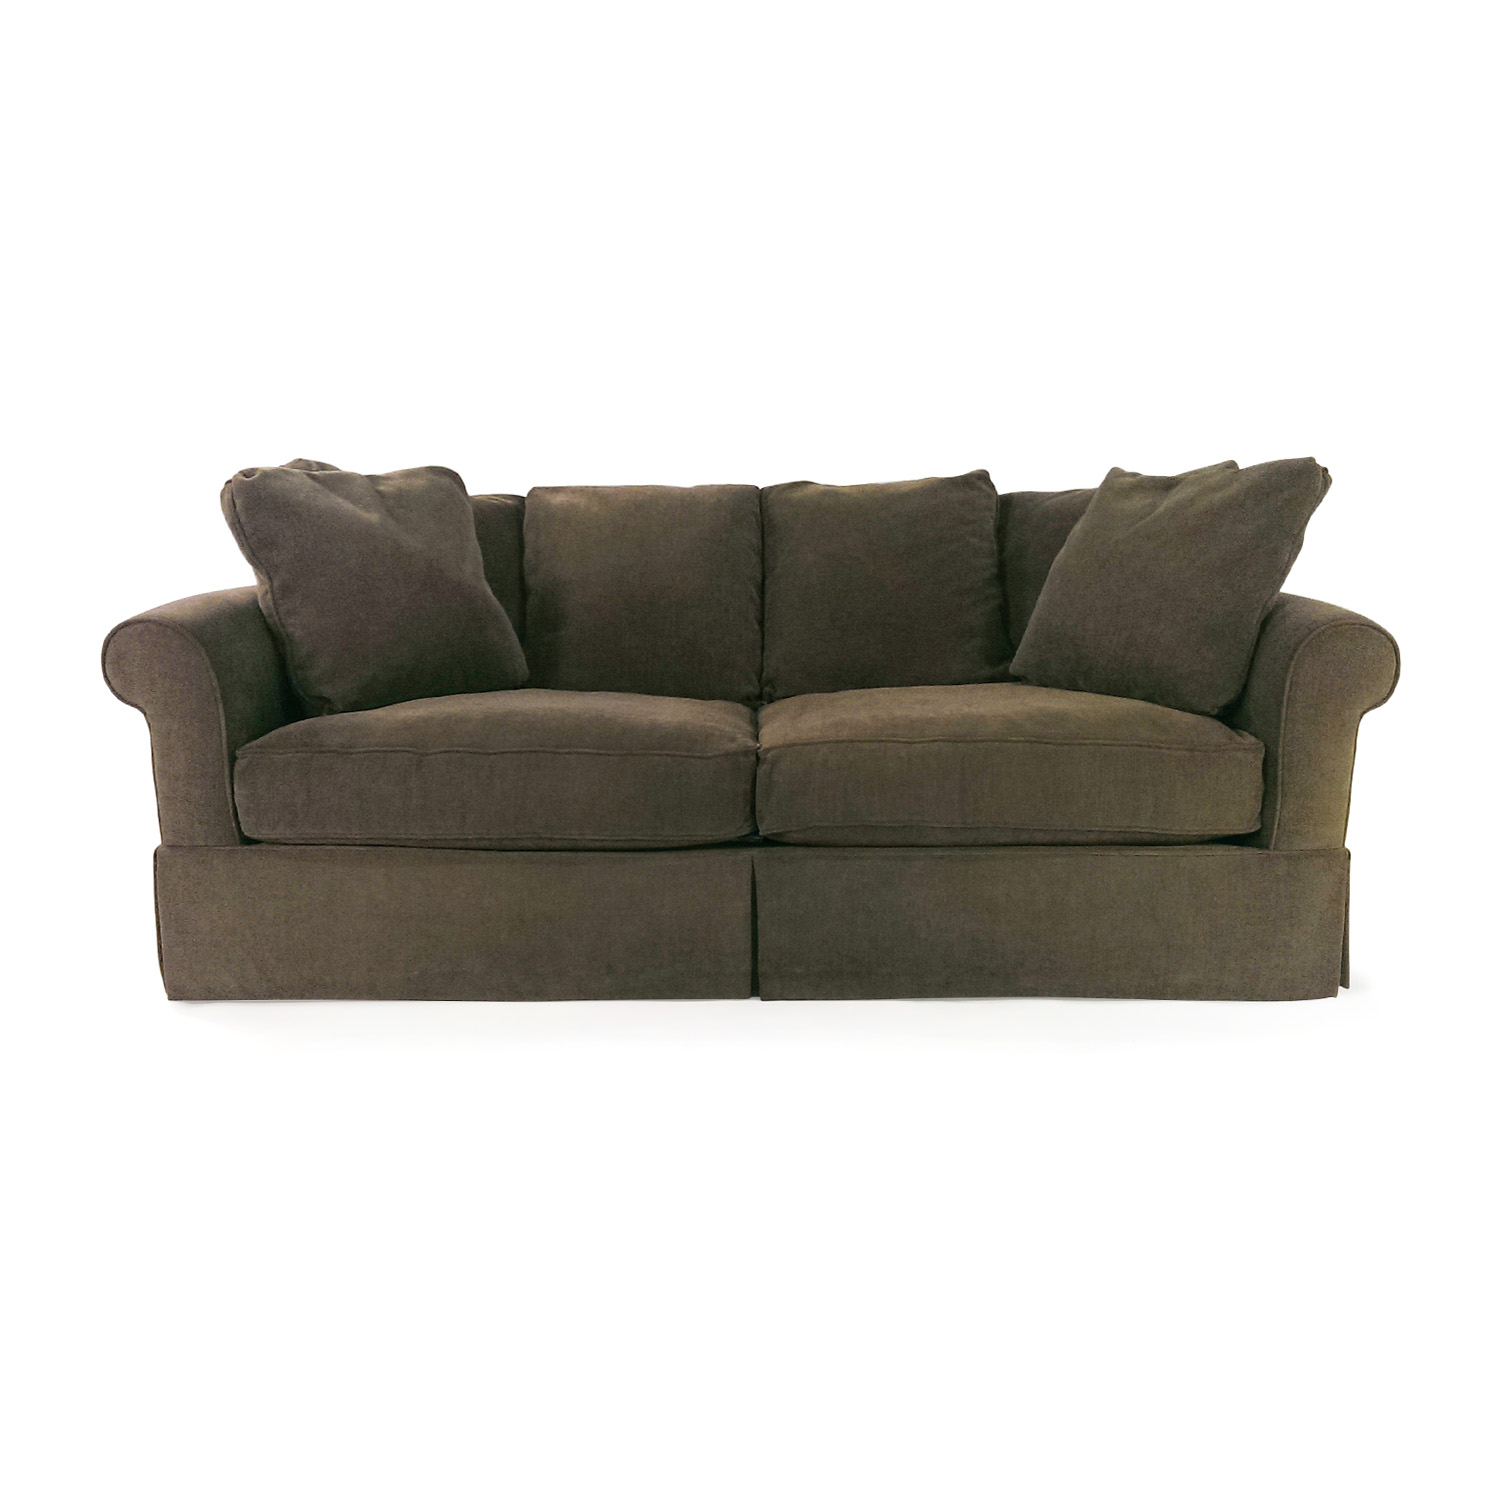 Macys Couch: Macy's Macy's Pea Green Couch / Sofas